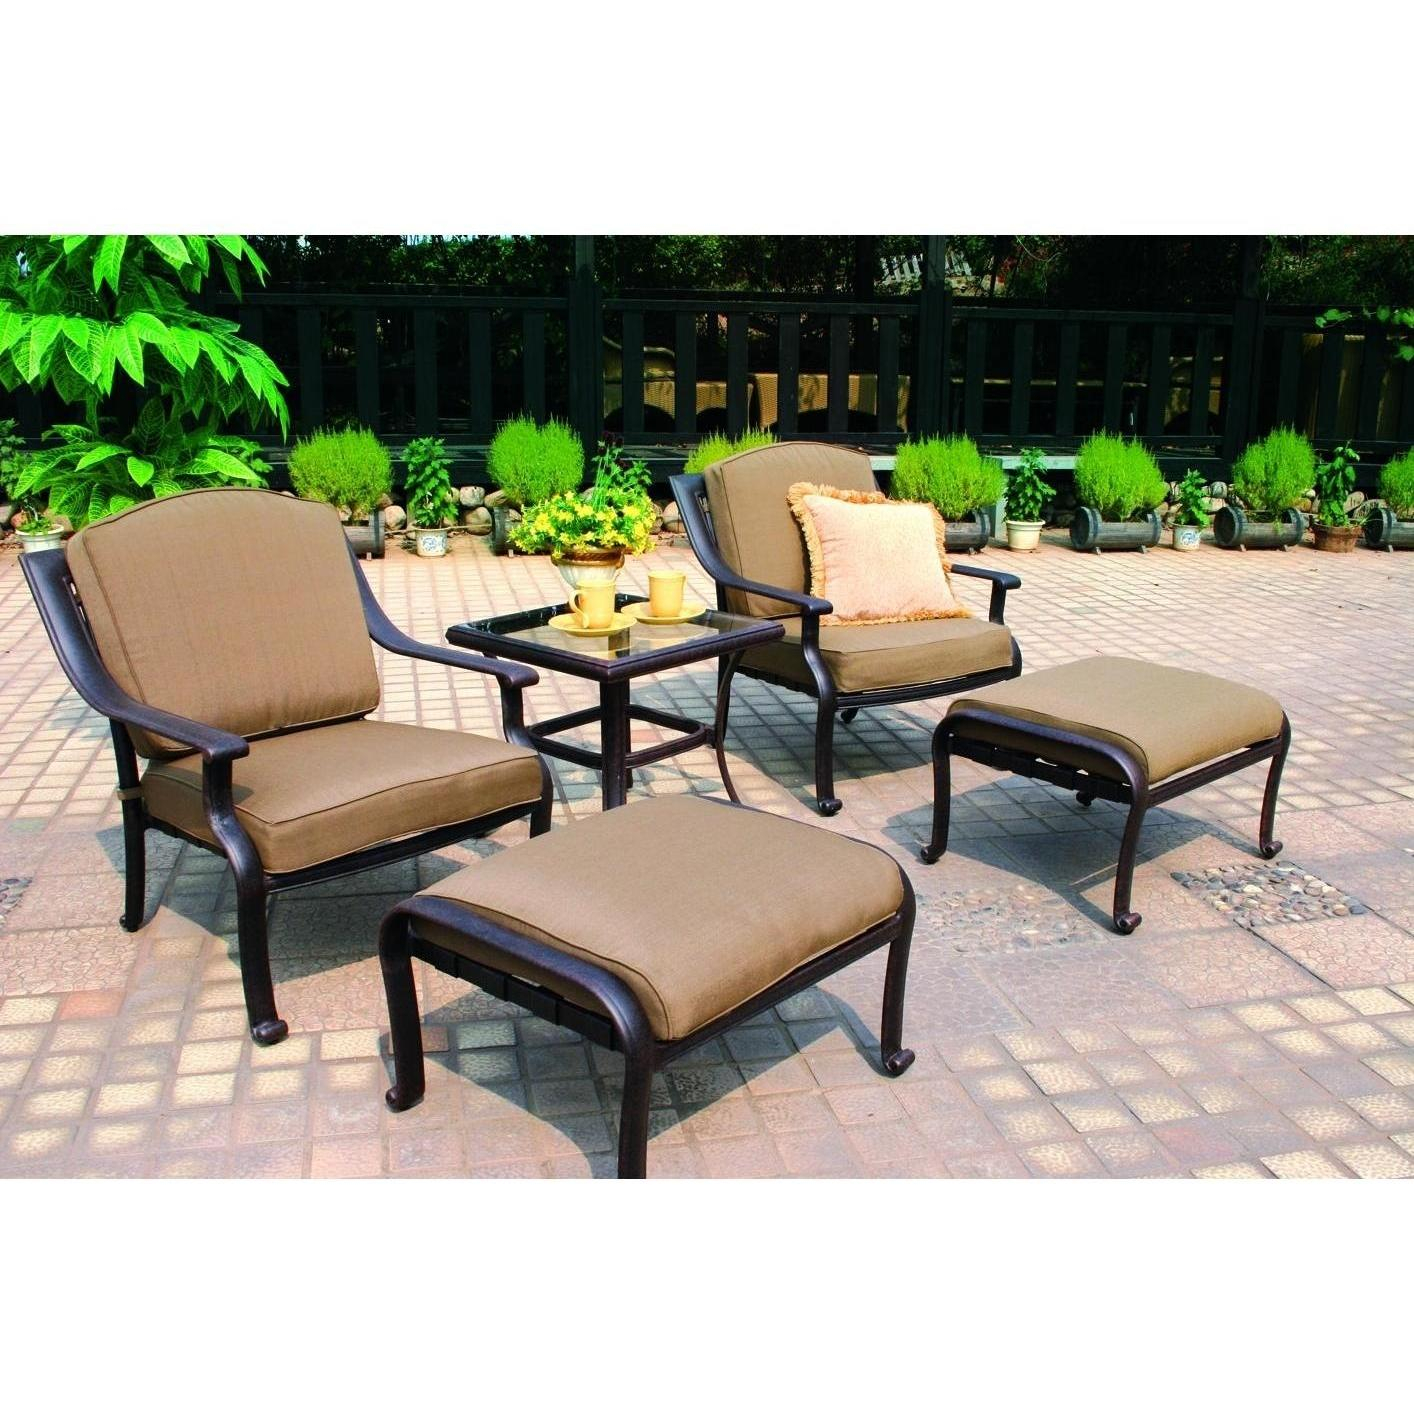 Monumental Outdoor Furniture Memphis Ken Rash 11 Awesome Patio with size  1414 X 1414 - Ken Rash Patio Furniture Memphis • Patio Ideas